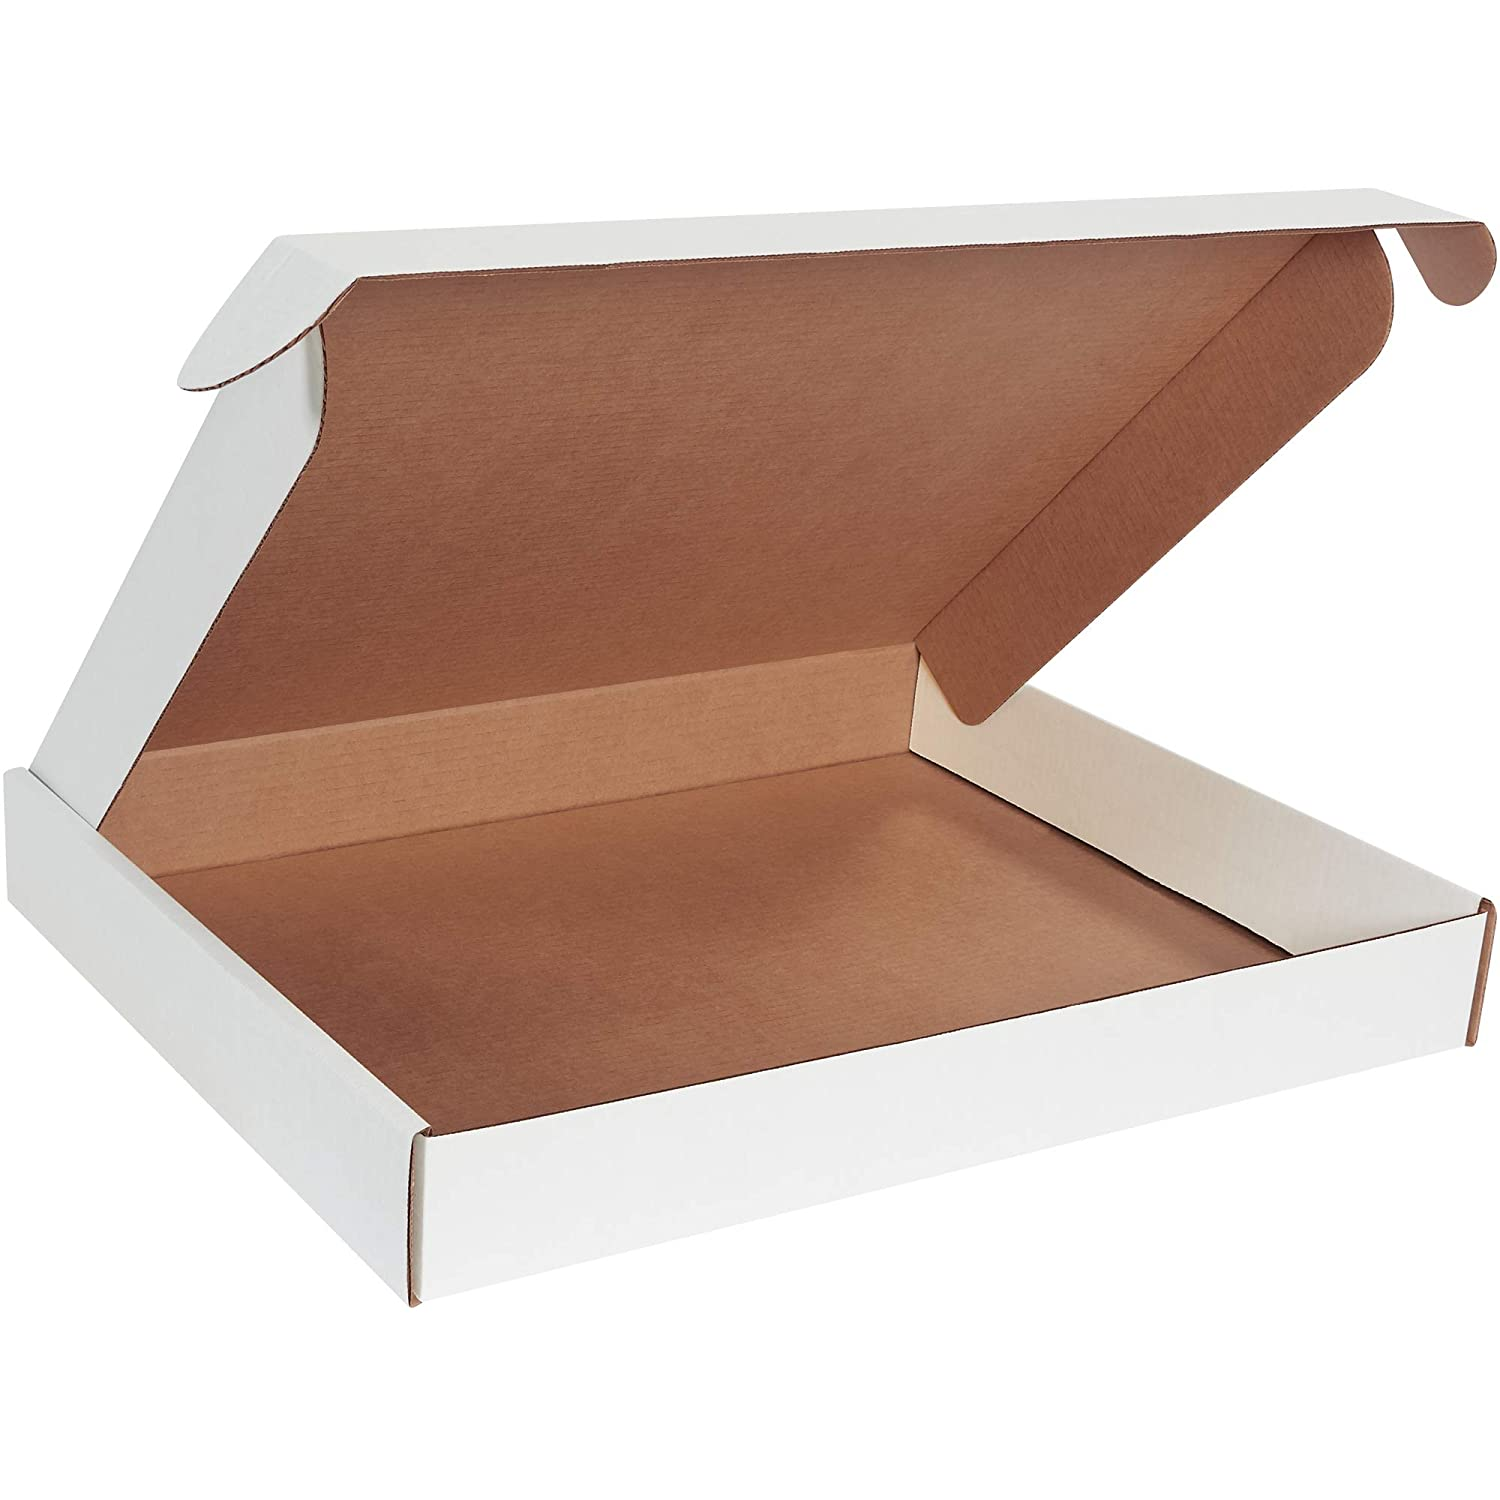 BOX USA BMFL22182 Online limited product Free shipping on posting reviews Deluxe Literature Mailers 4